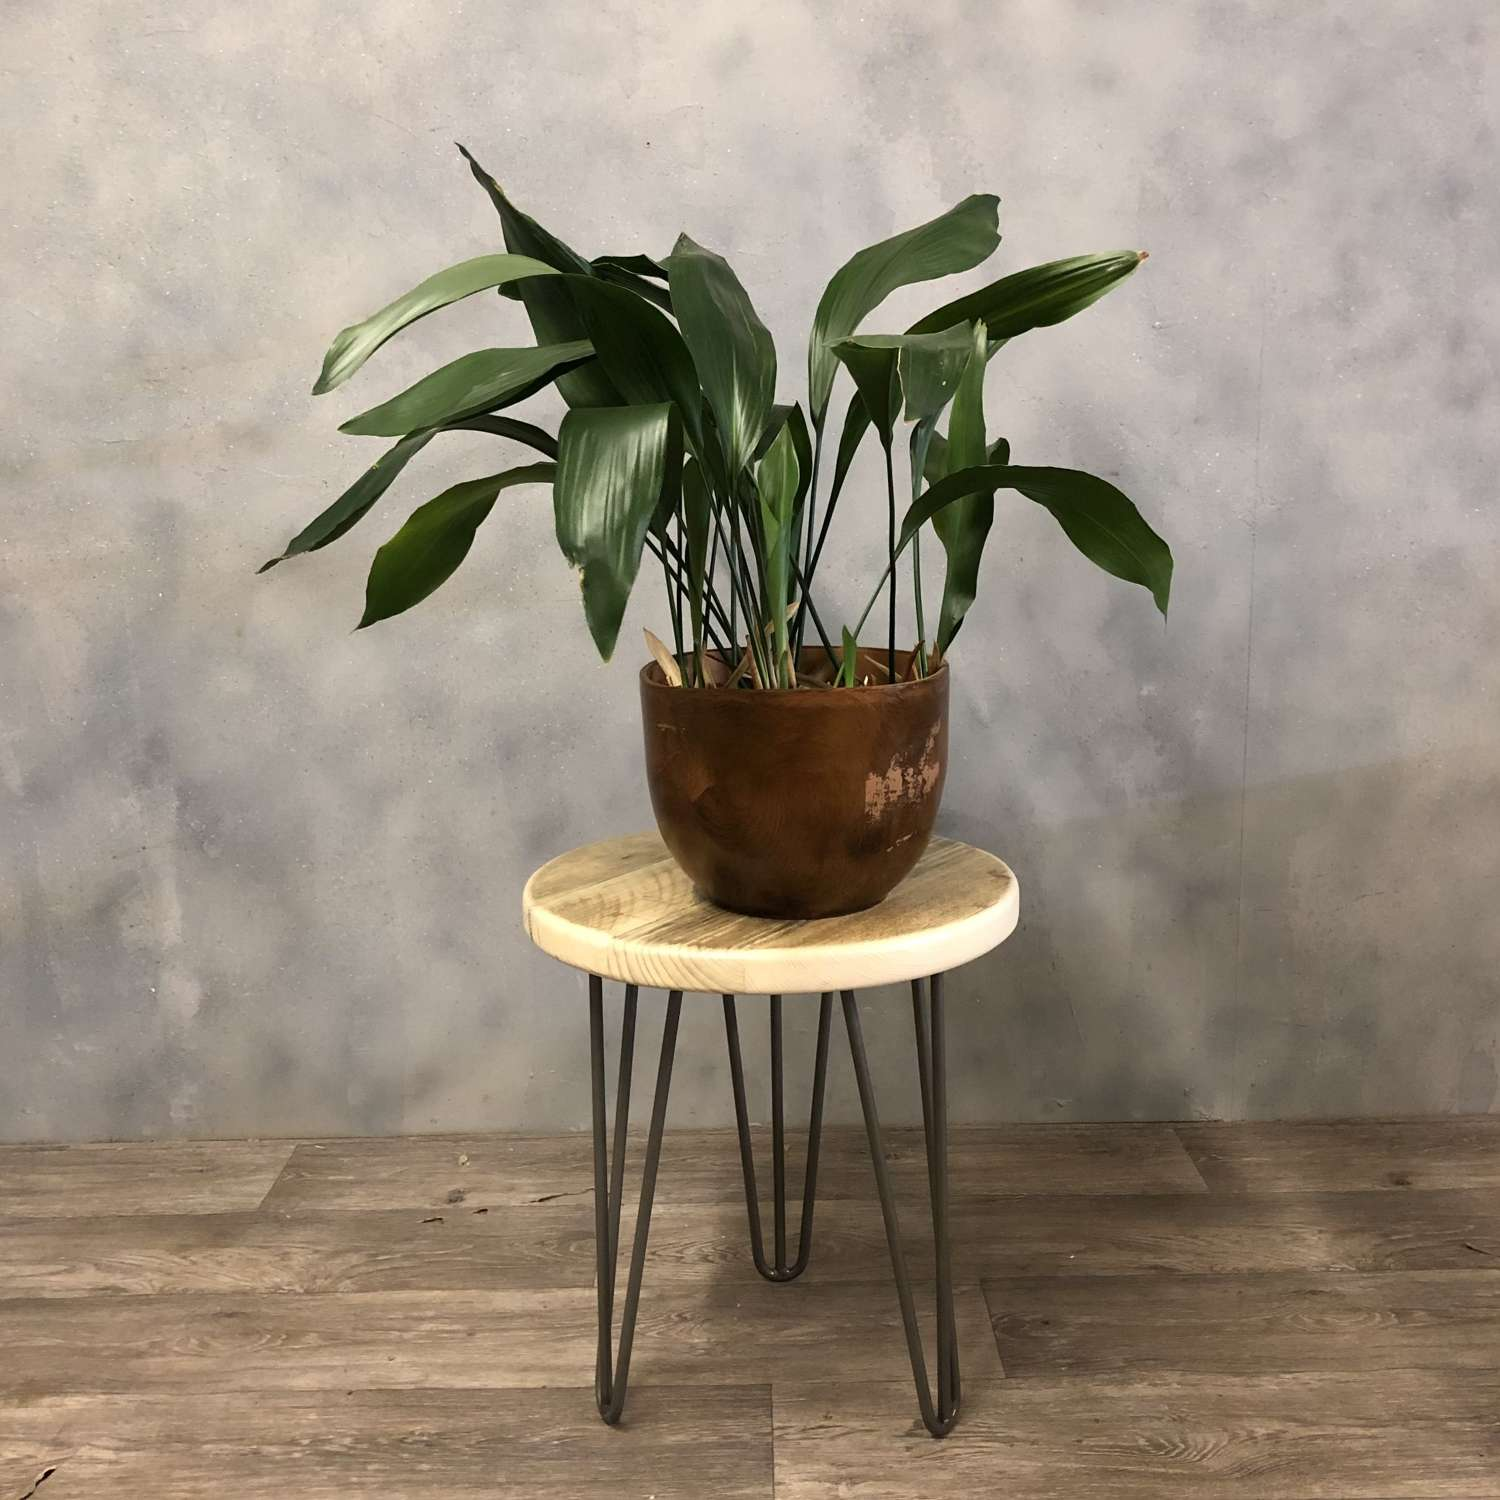 Hairpin occasional table or plant stand (low)